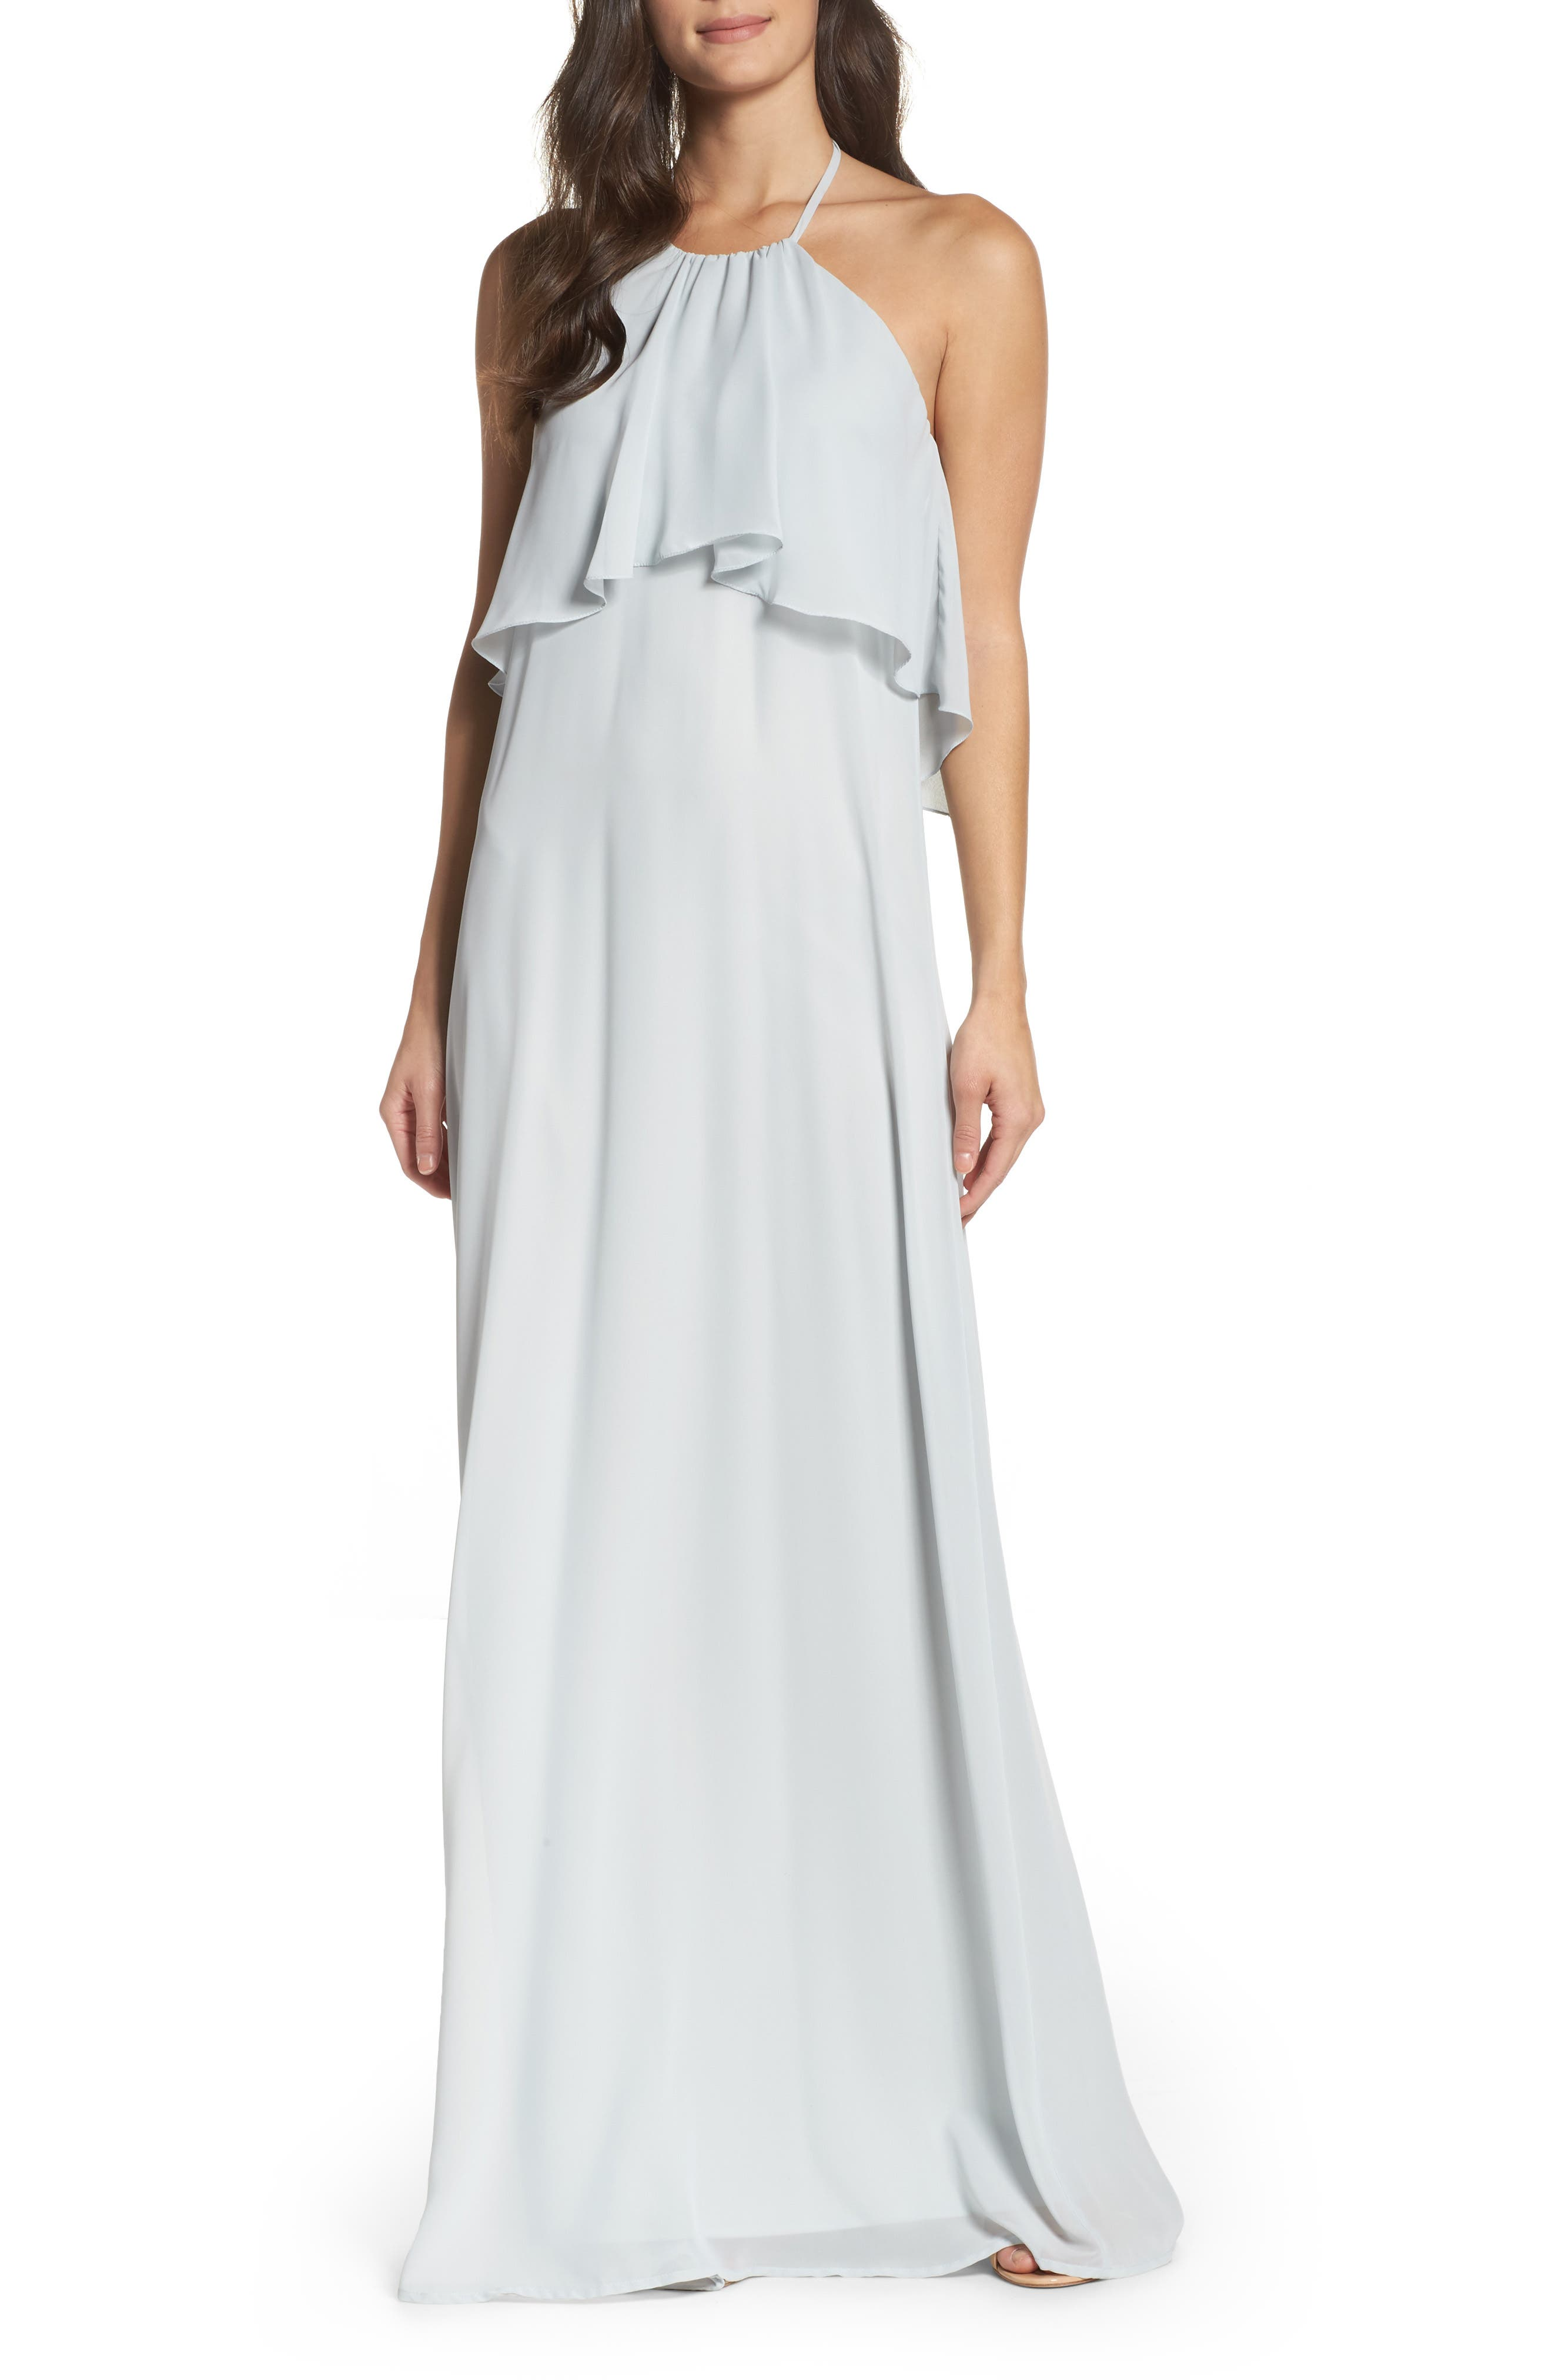 Alternate Image 1 Selected - nouvelle AMSALE 'Cait' Chiffon Halter Gown